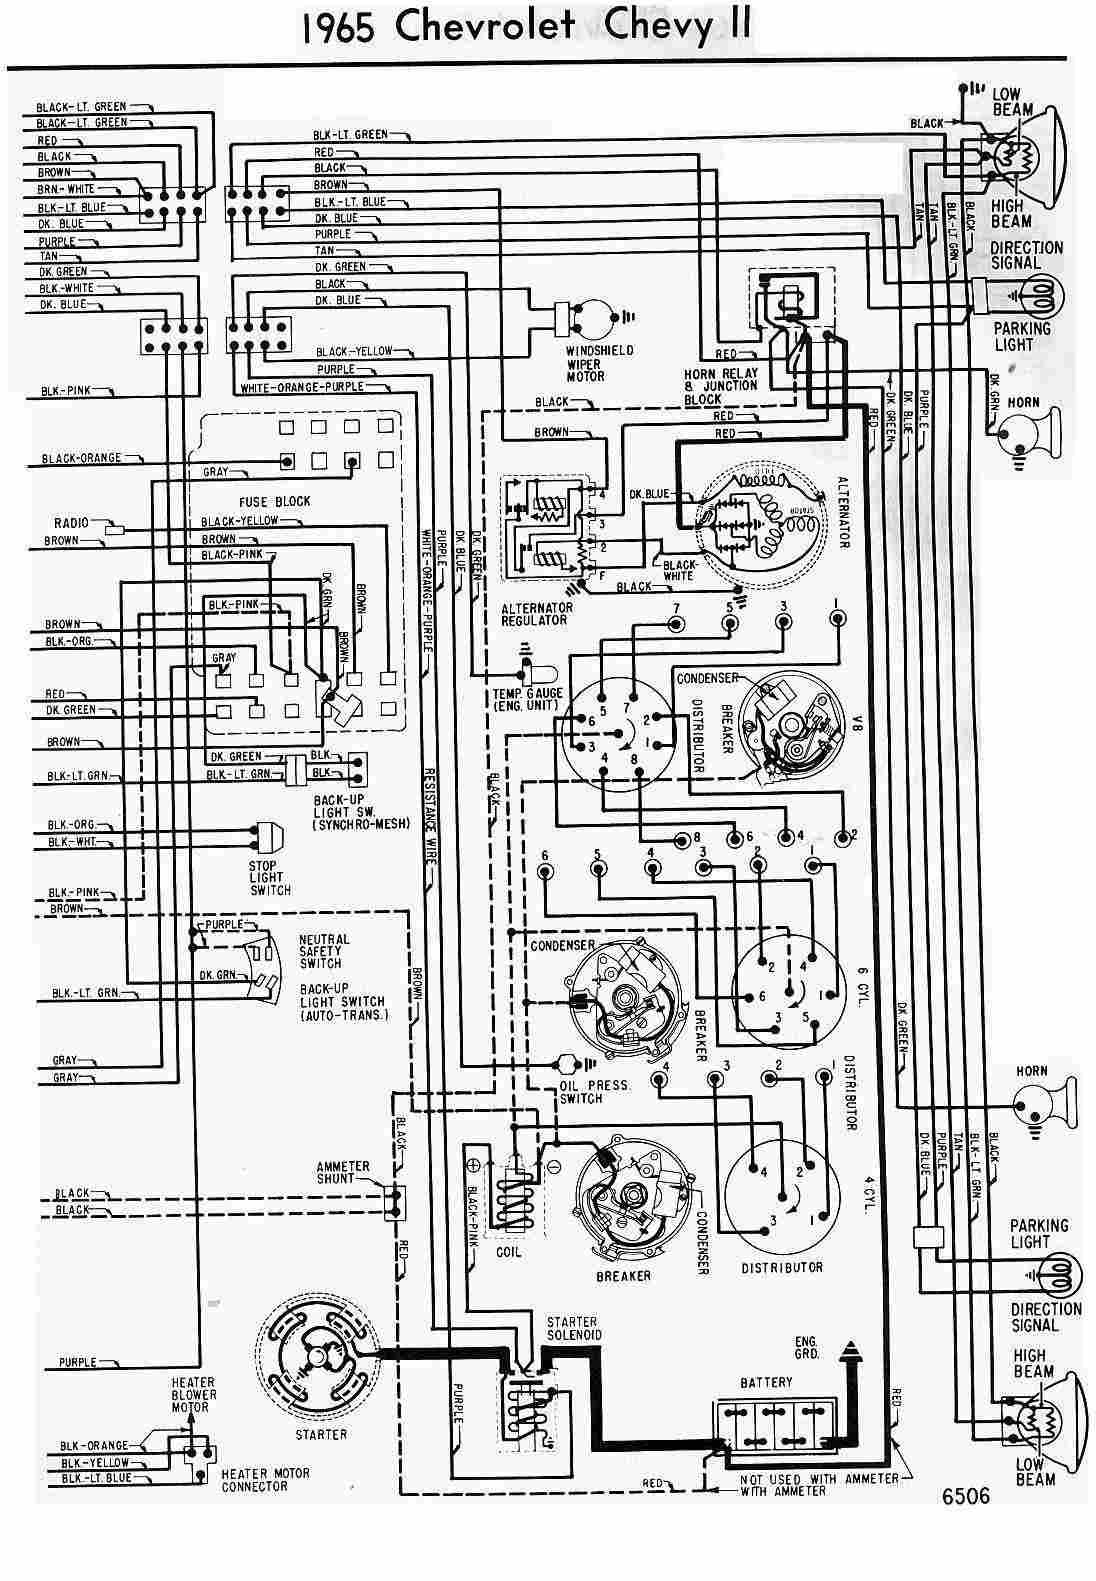 small resolution of 65 corvair wiring diagram simple wiring diagrams 2009 chevy impala wiring diagram 1965 chevy wiring diagram